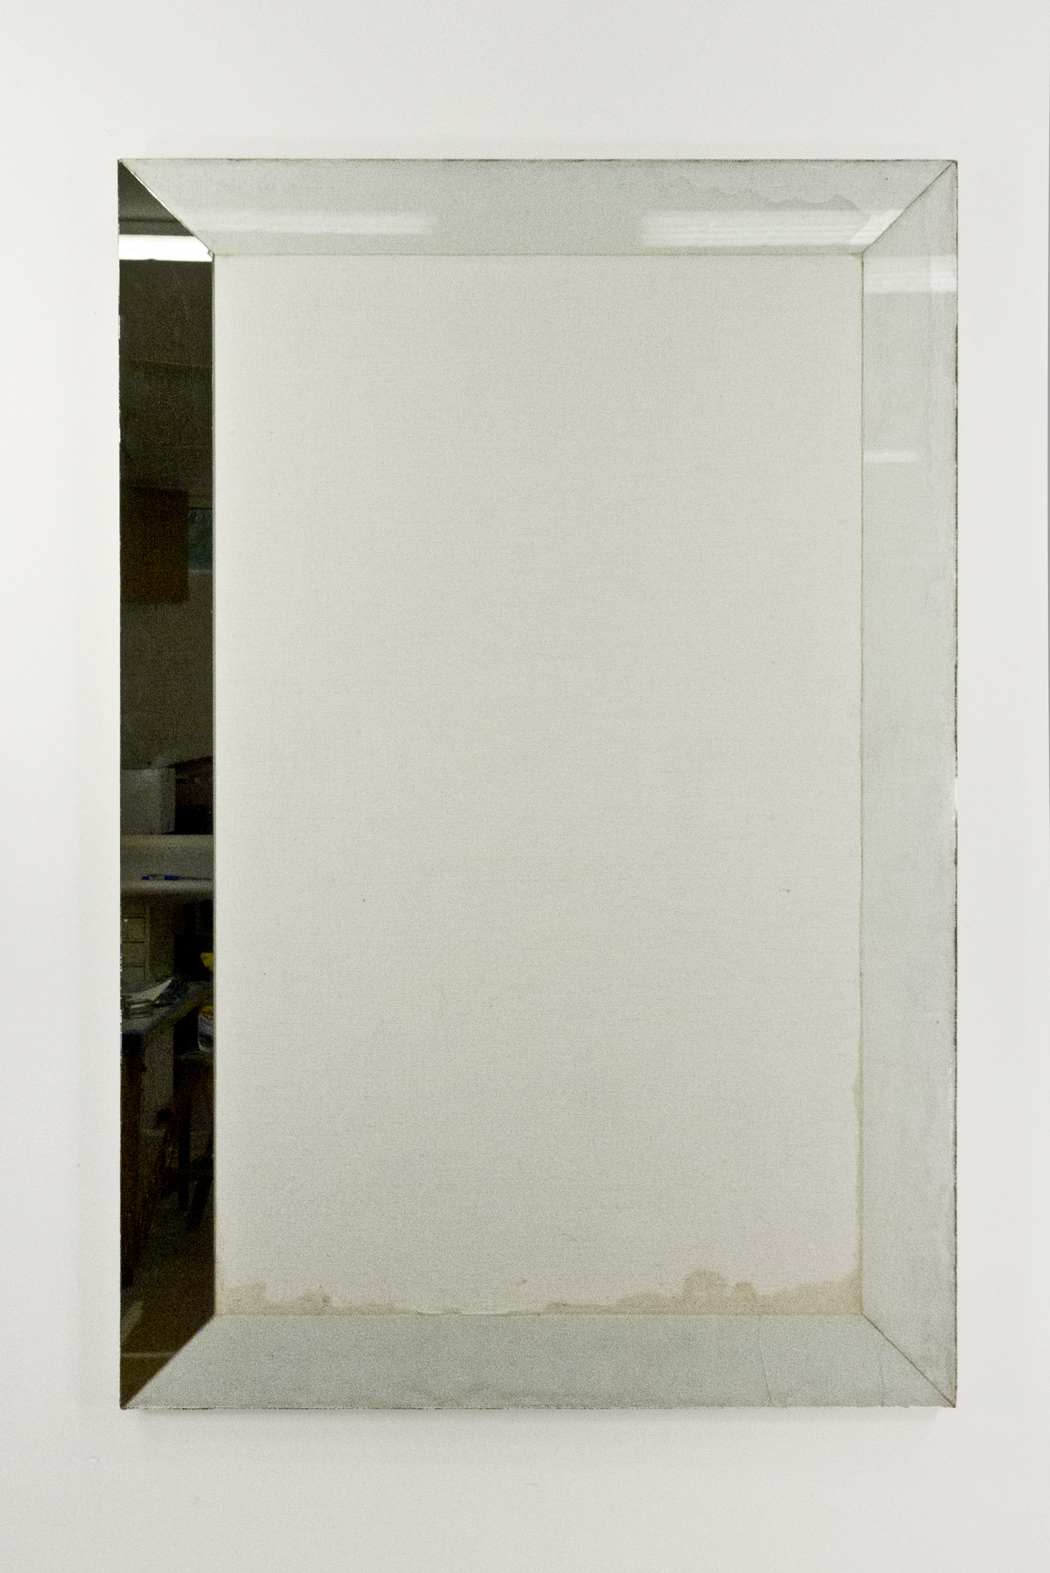 "Self Portrait; Primed linen with resin, glass and mirror; 57 3⁄4 x 38 1⁄4""; Item #097"